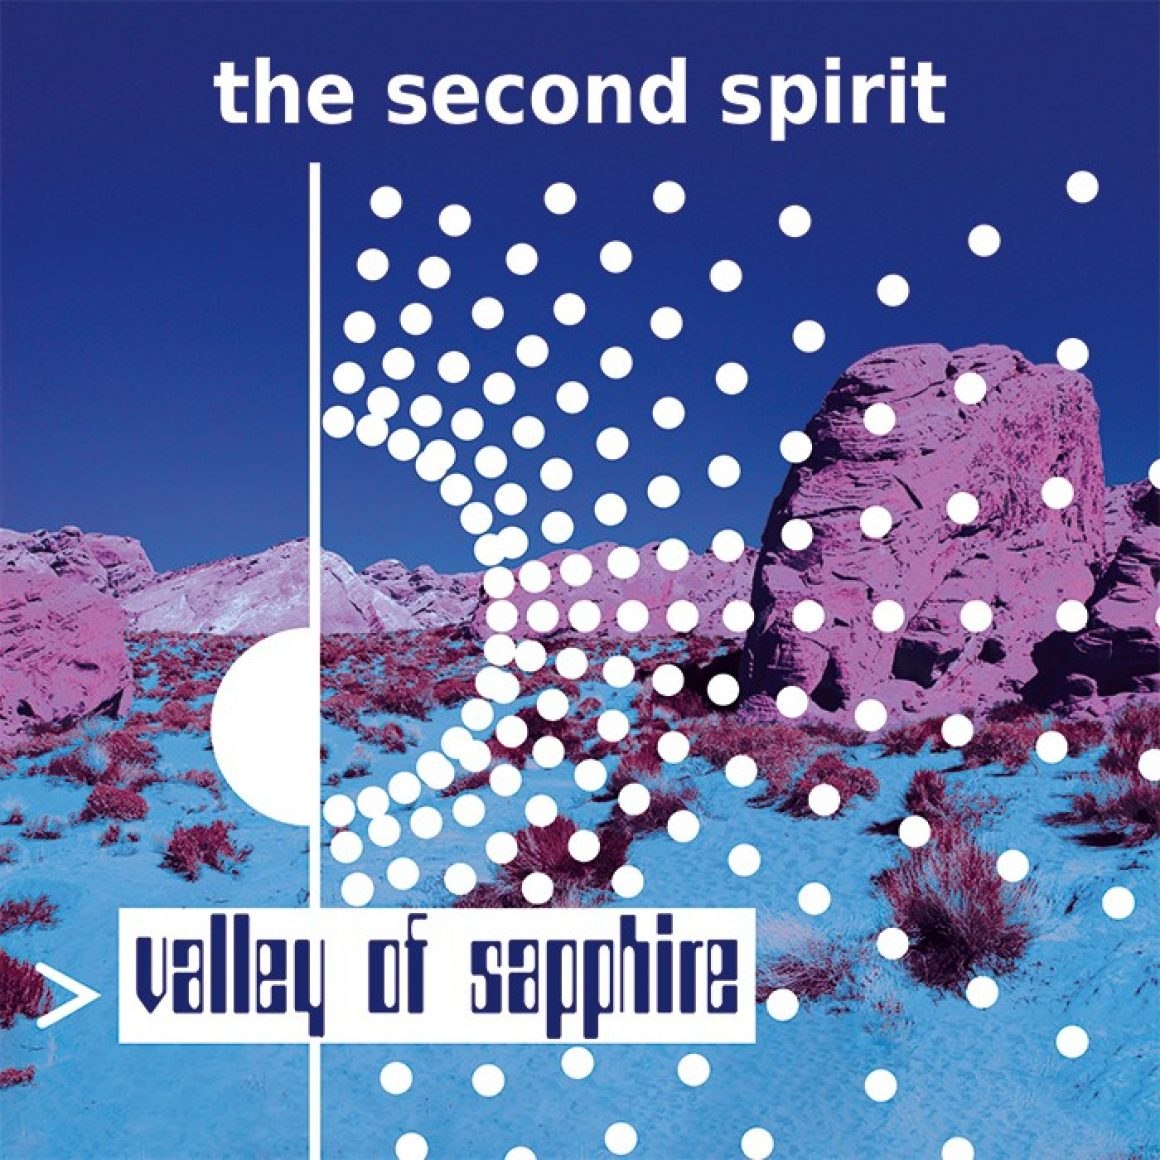 The Second Spirit - Valley of Sapphire - Cover Art 1 Front